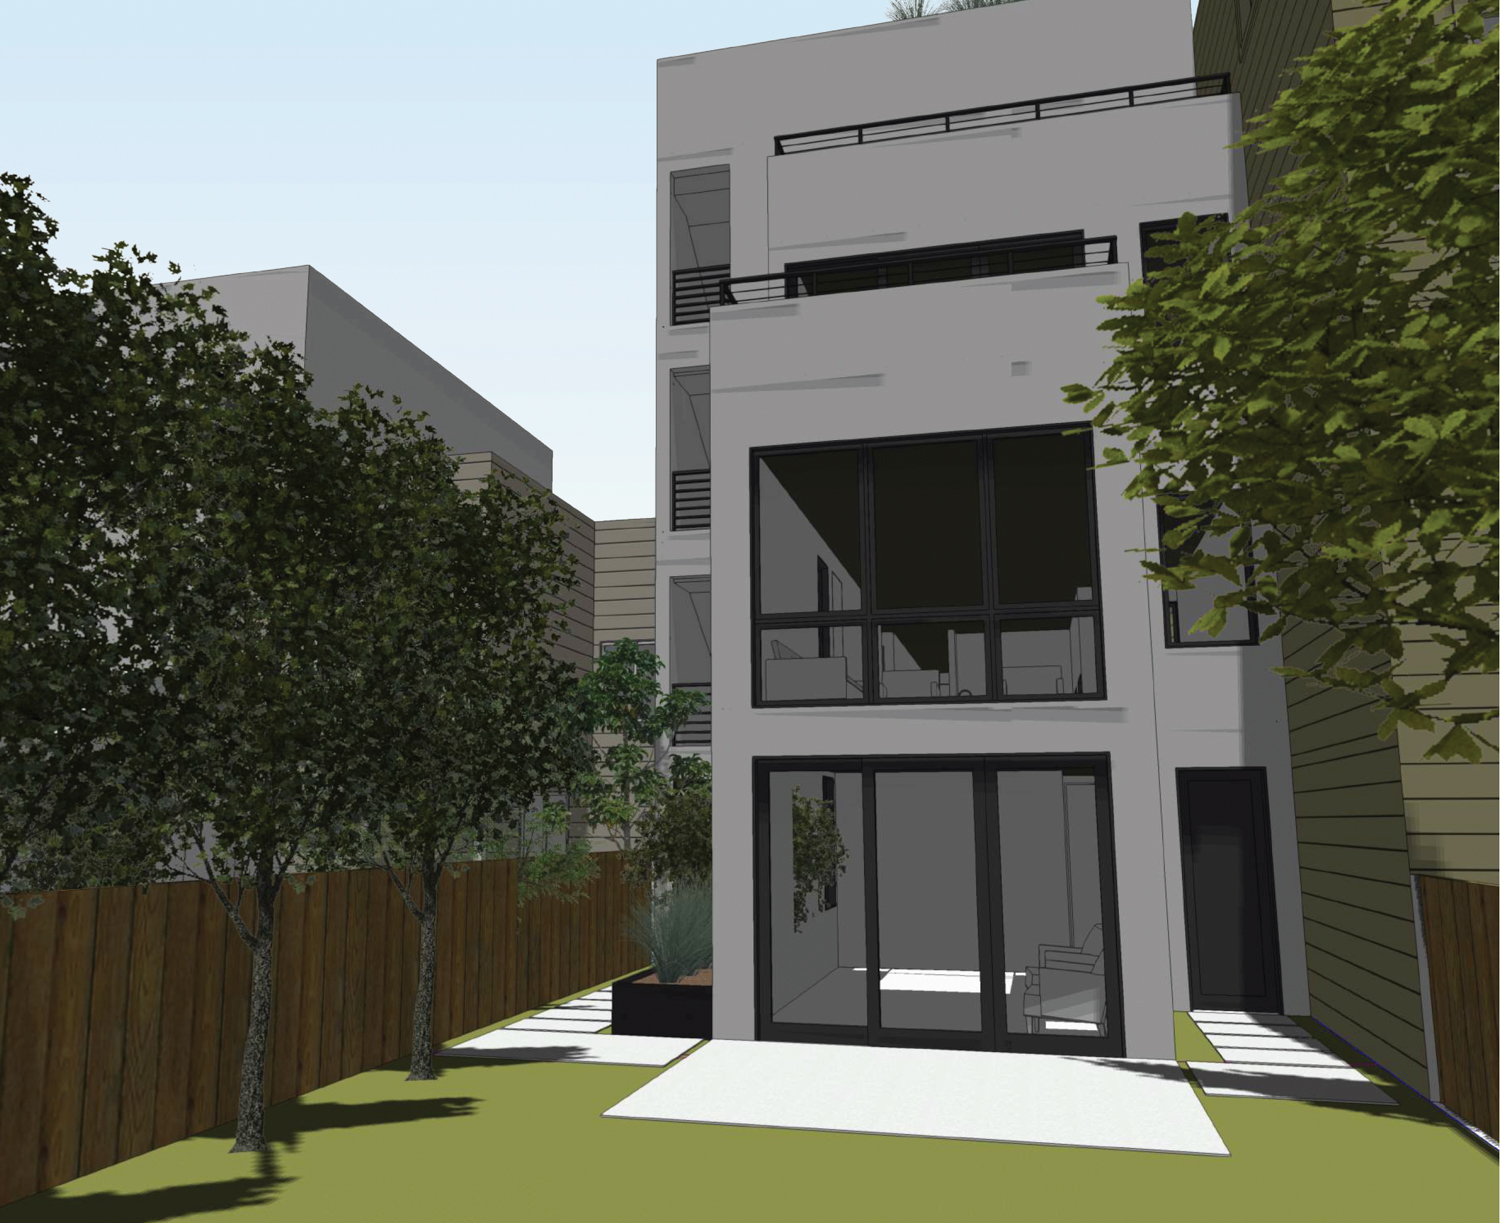 33-37 Capra Way viewed from the ground-level private backyard, rendering by John Lum Architecture